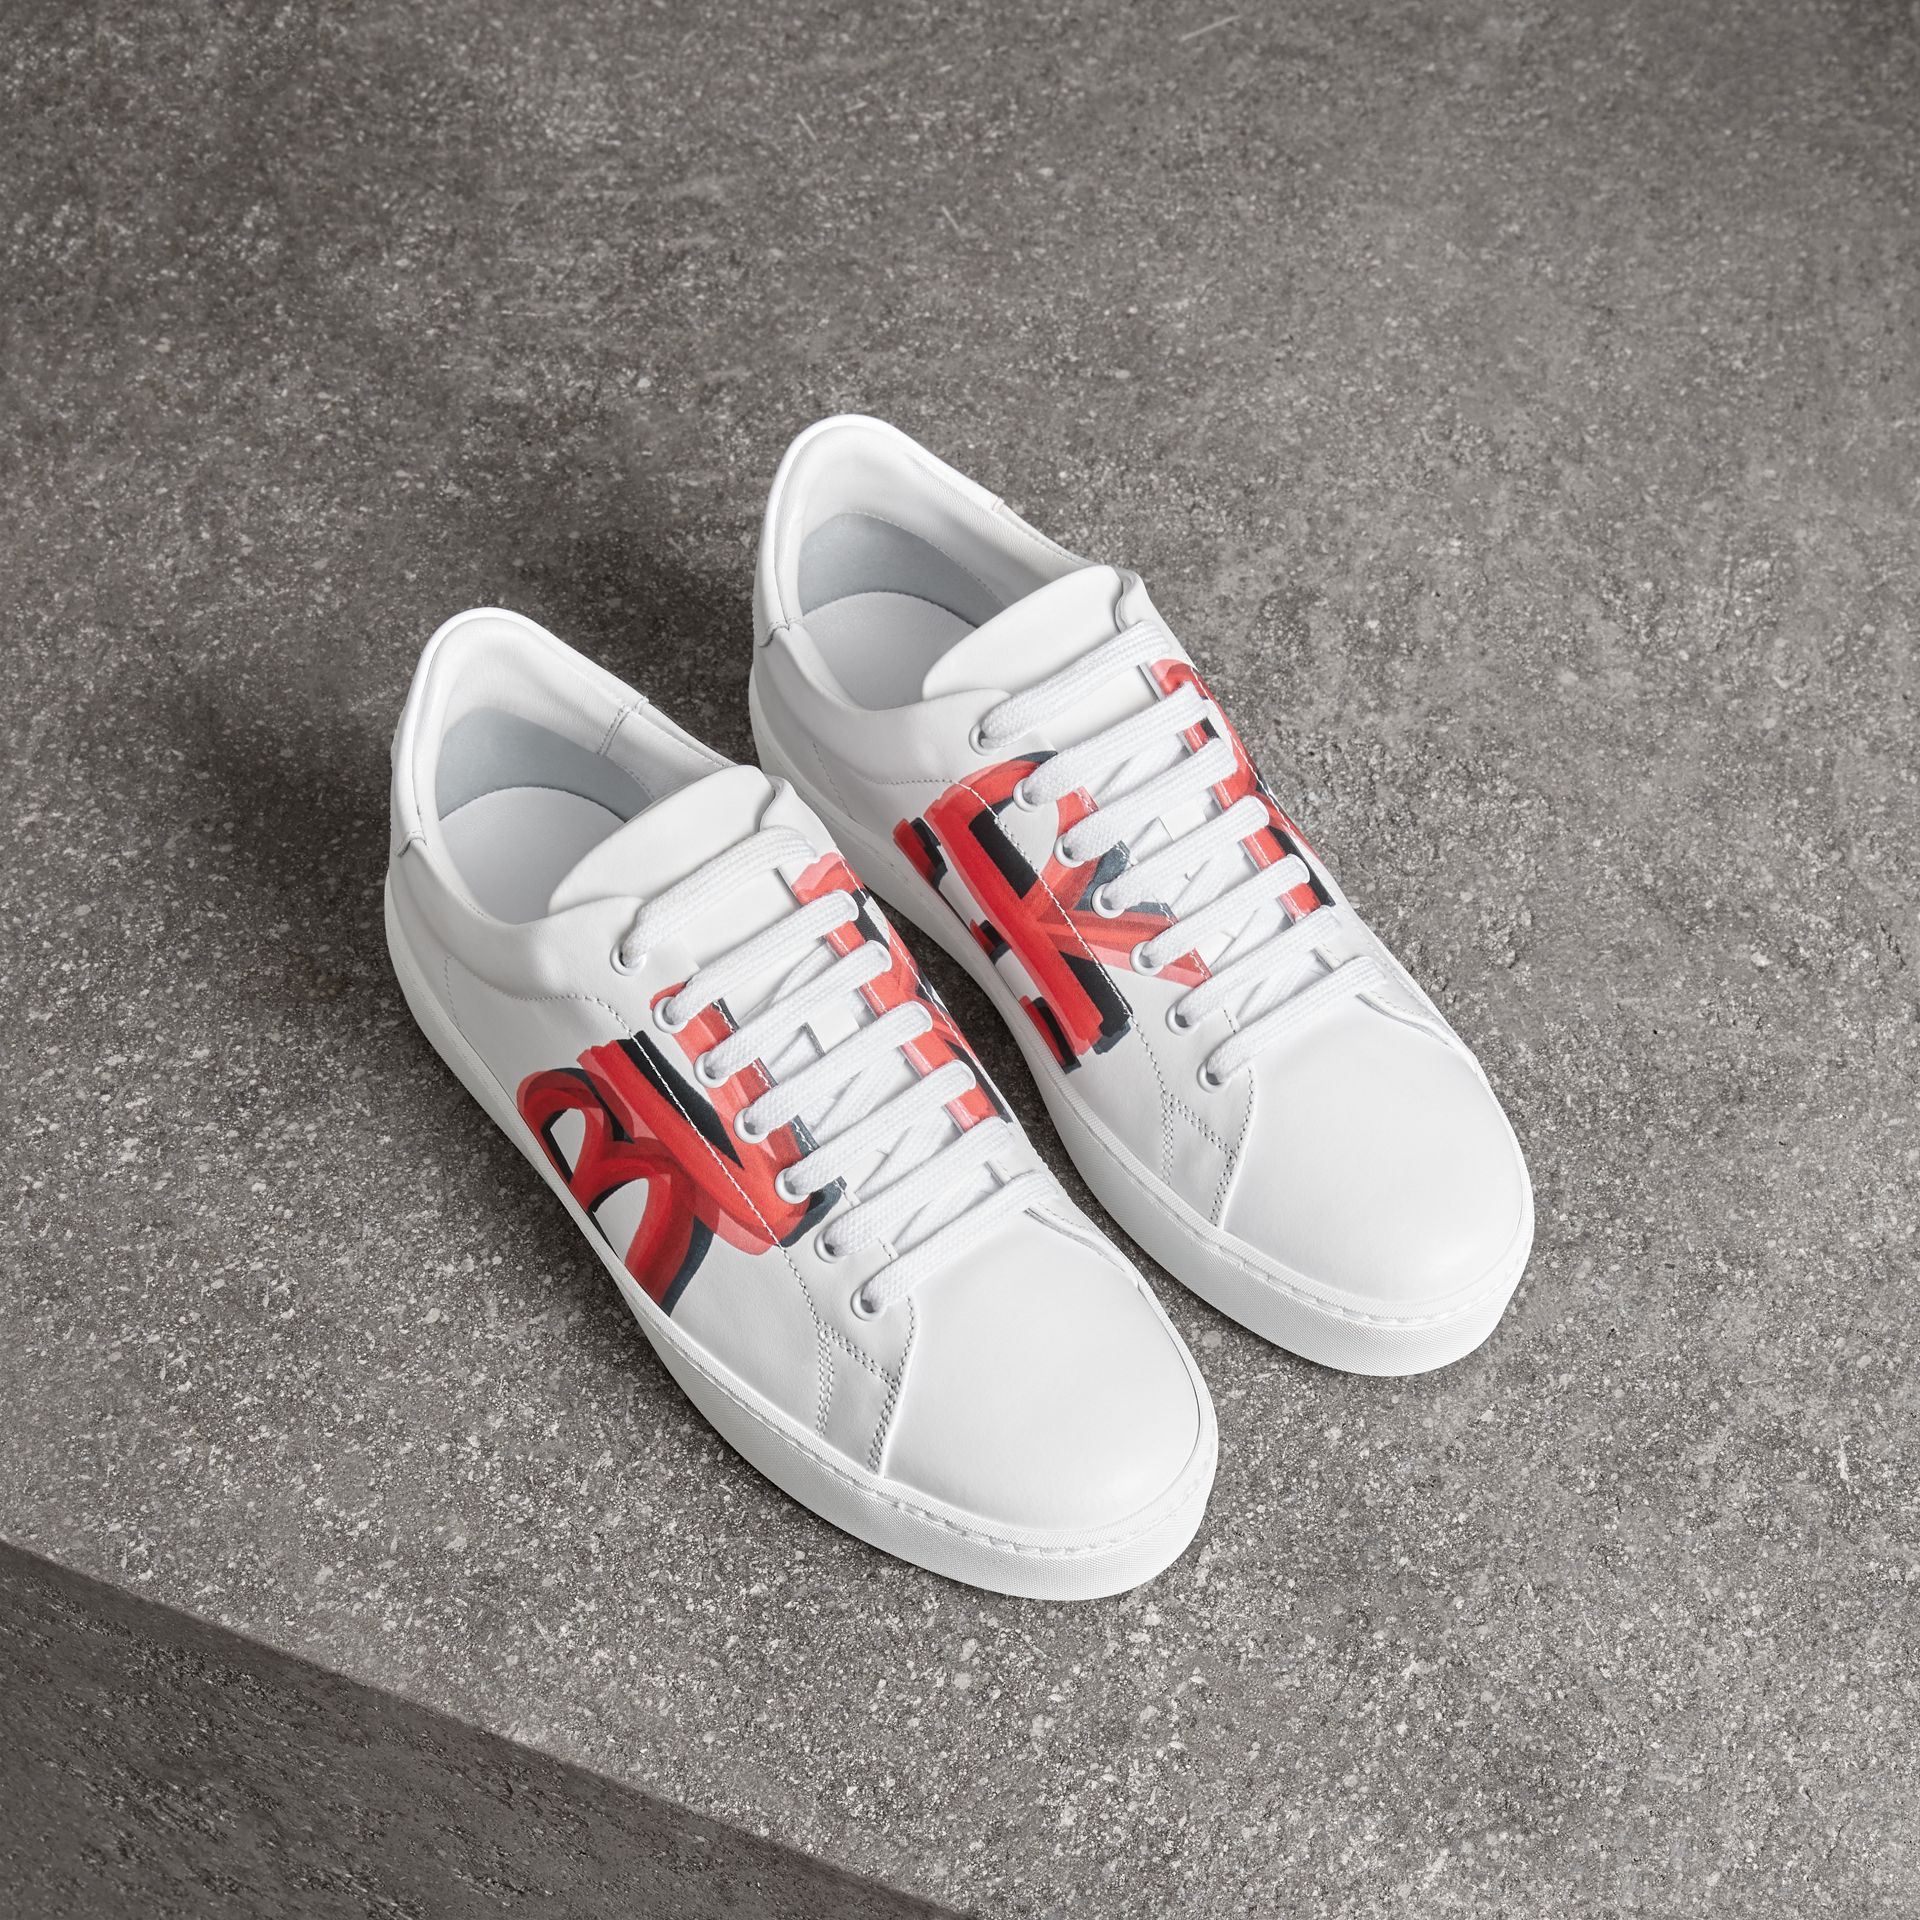 Graffiti Print Leather Sneakers in Bright Red - Women | Burberry - gallery image 0